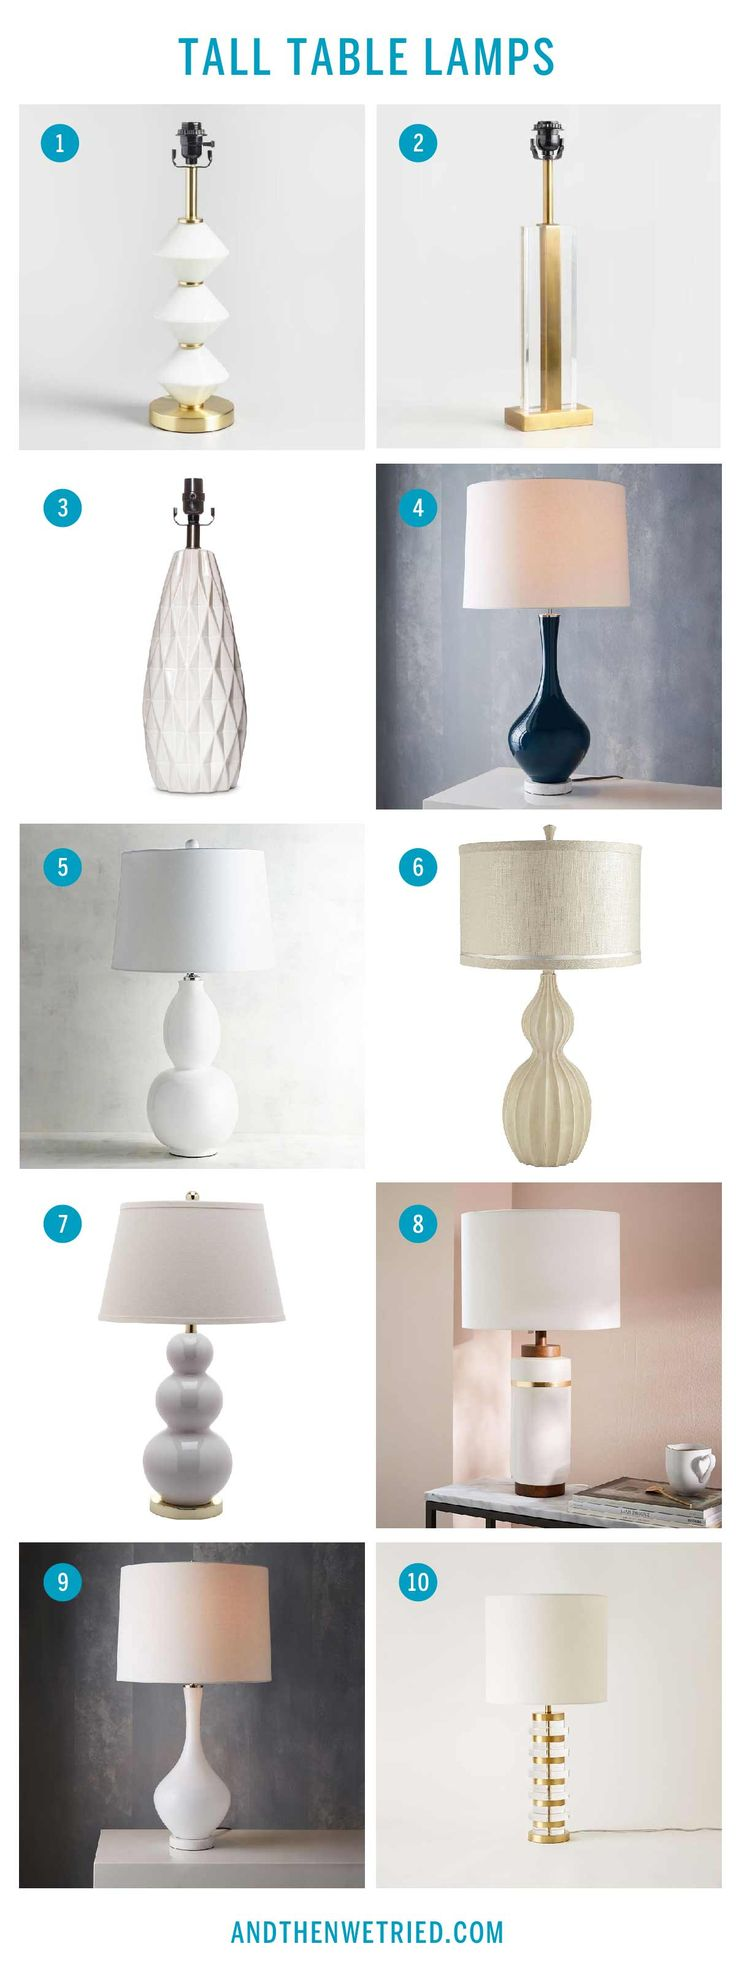 """Our top ten tall table lamps for a living room end table. We searching the internet to find beautiful ceramic or glass table lamps with approximately 20"""" tall bases"""